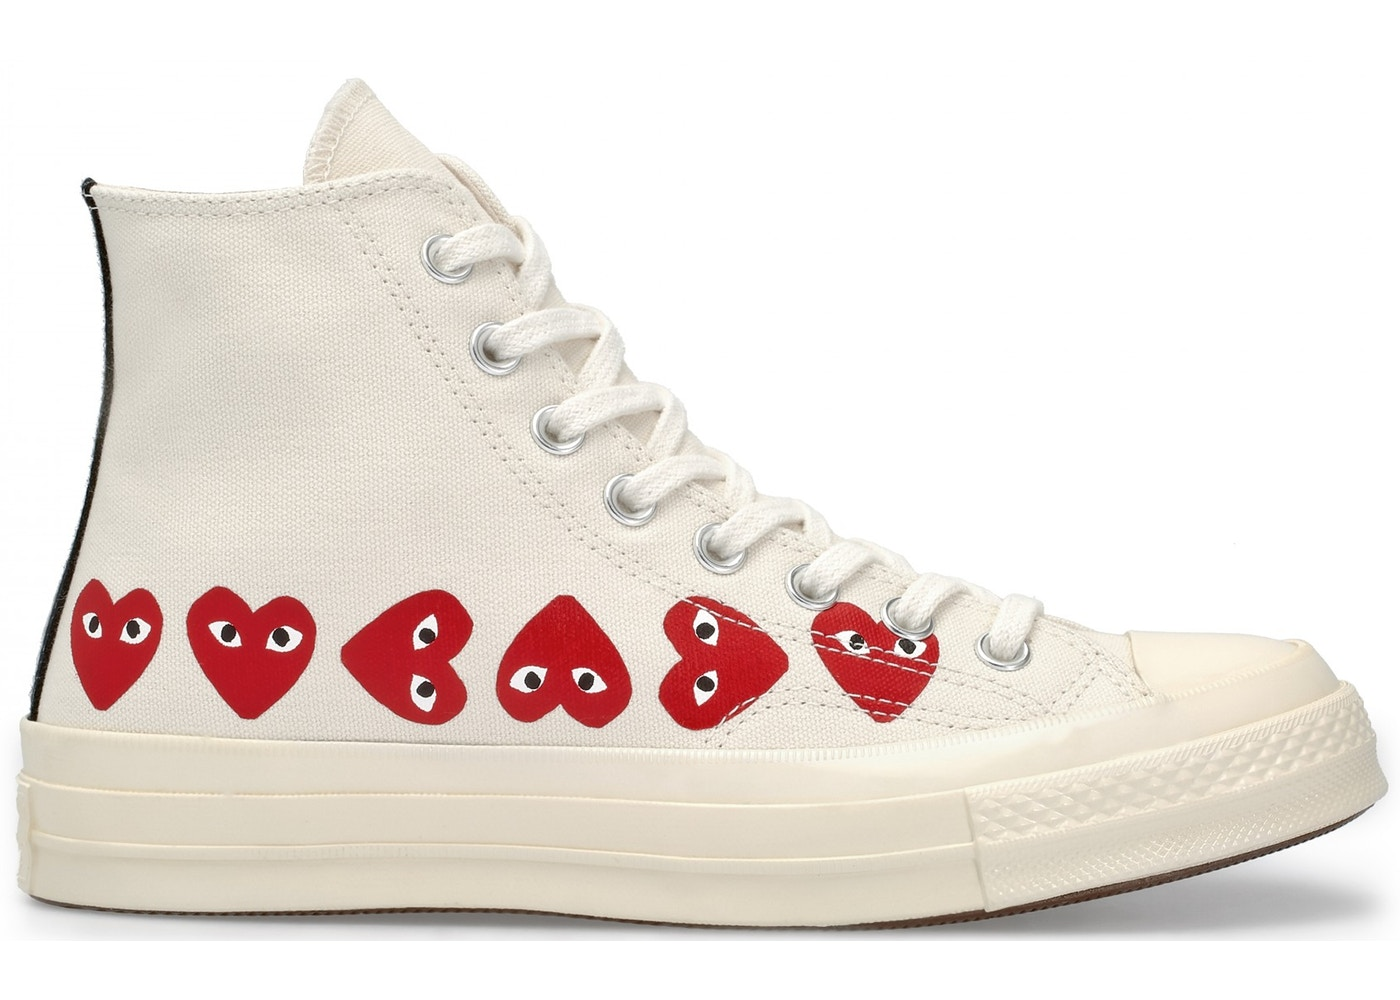 07902fcae6 Converse Chuck Taylor All-Star 70s Hi Comme des Garcons Play Multi-Heart  White - 162972C